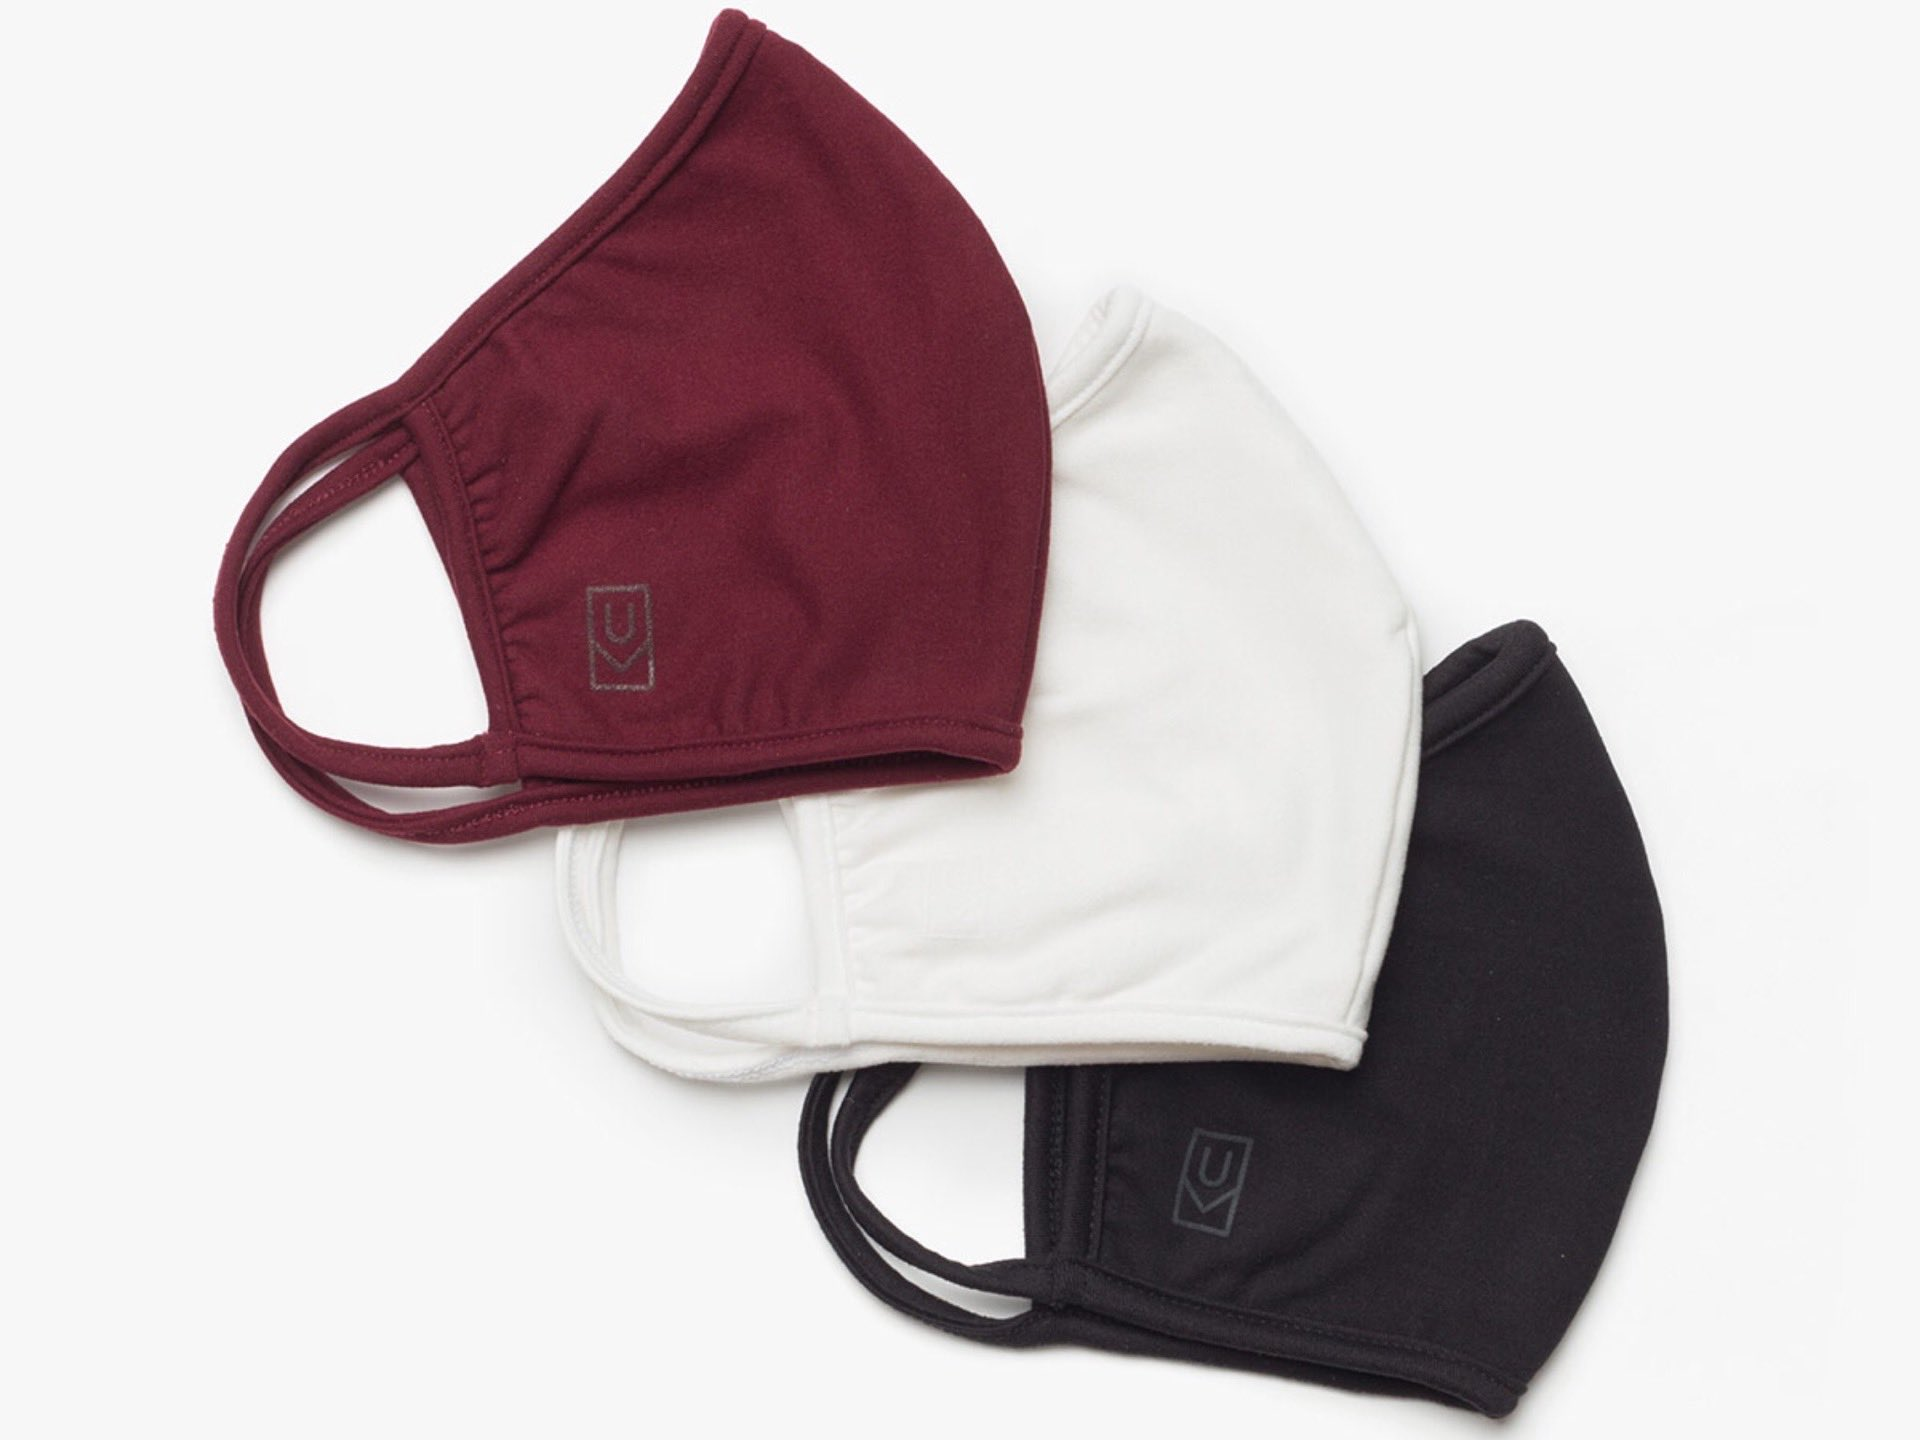 ugmonk-face-mask-two-new-colors